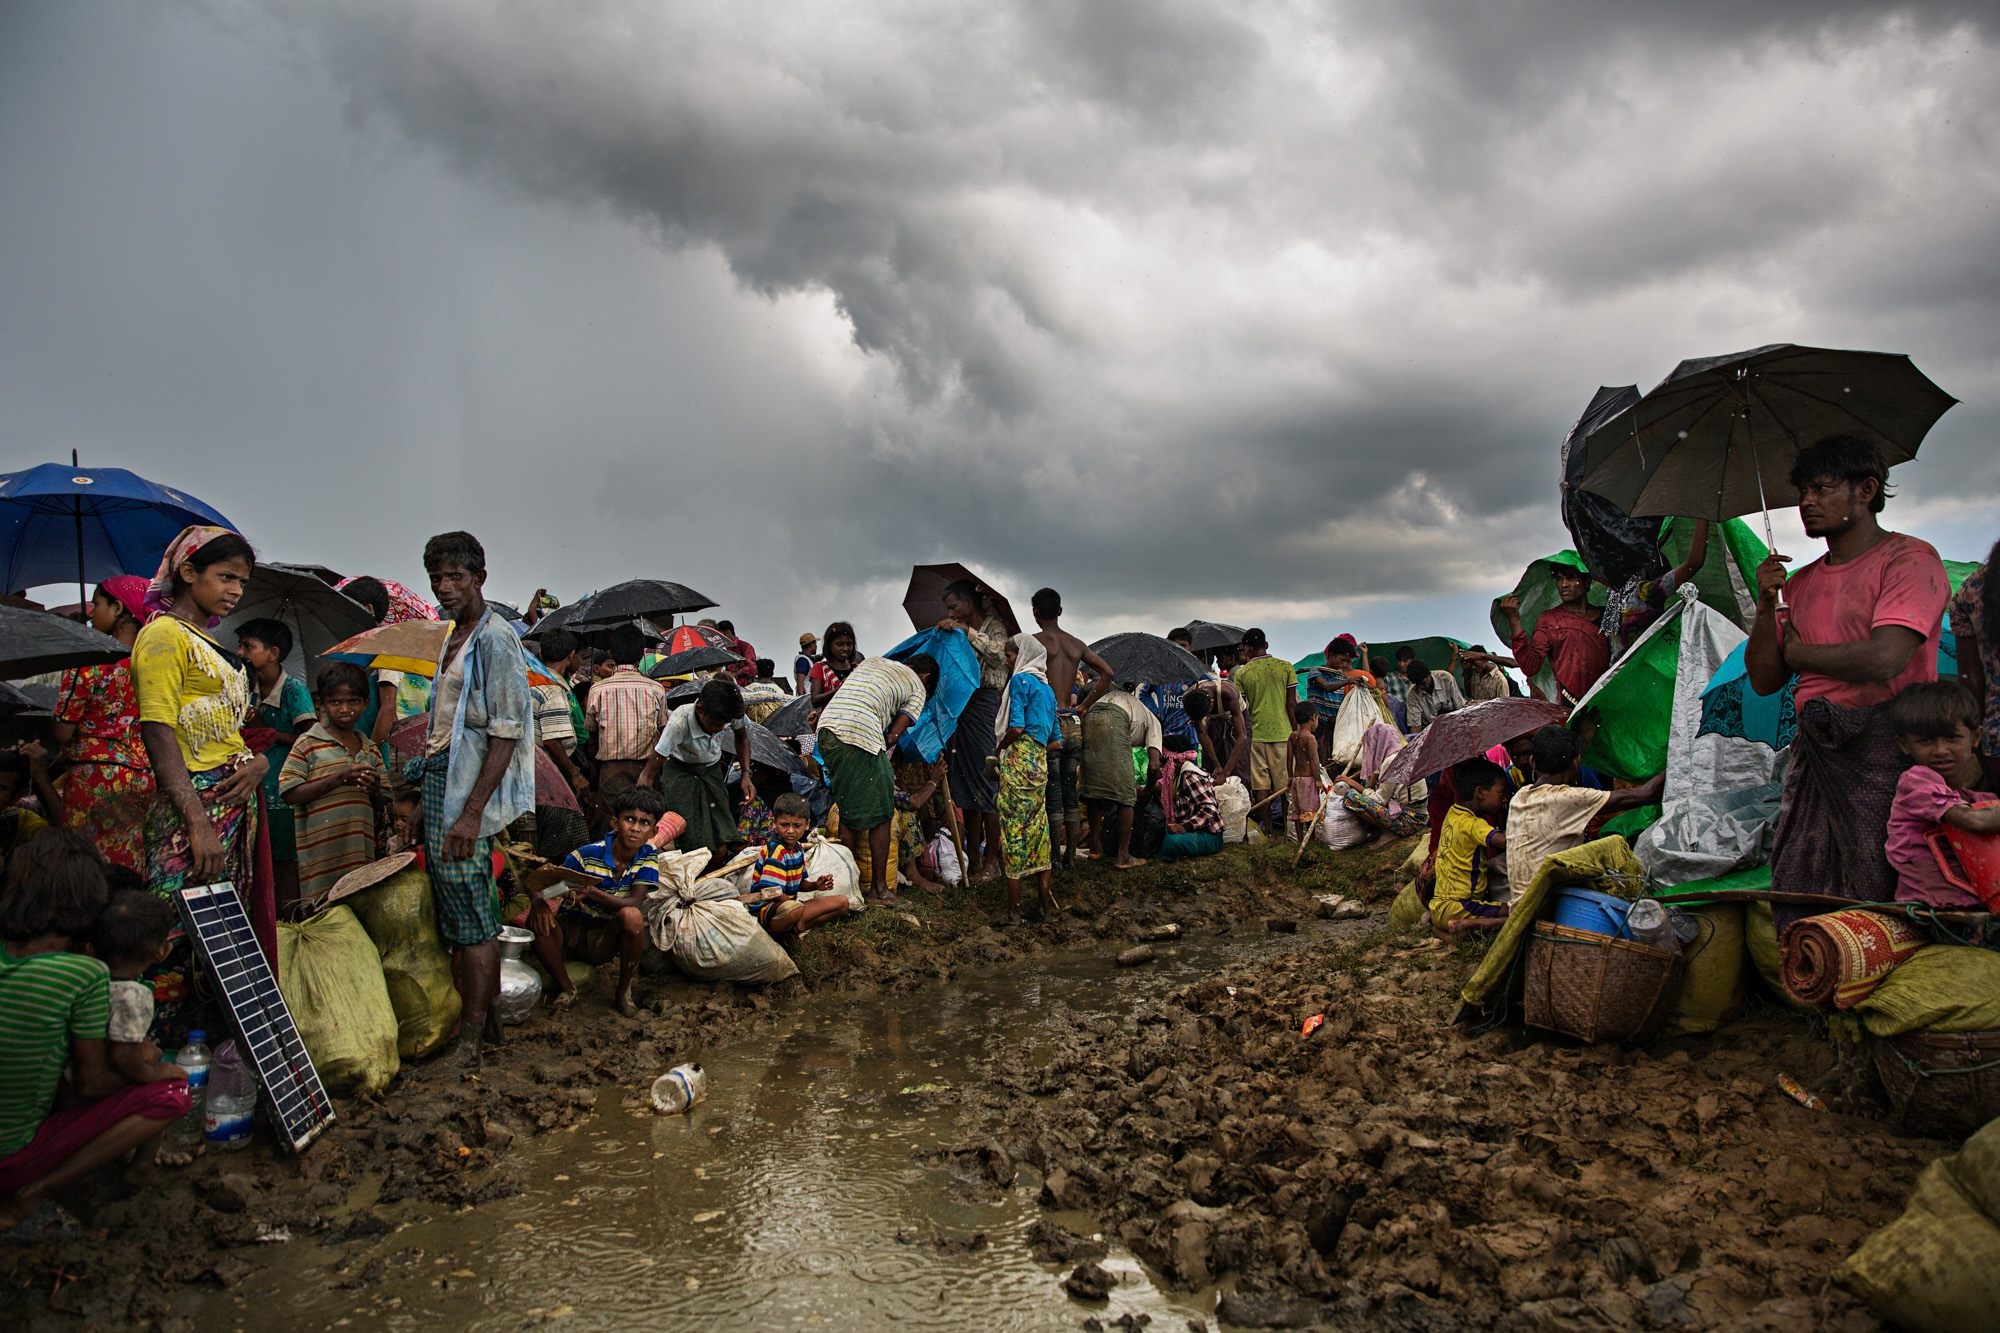 Rohingya refugees wait in a muddy rice paddy field after crossing the Naf River, on orders of the Border Guards Bangladesh (BGB). They were kept there for more than a day, through intense heat and rain. At least one person died and many others collapsed from exhaustion.